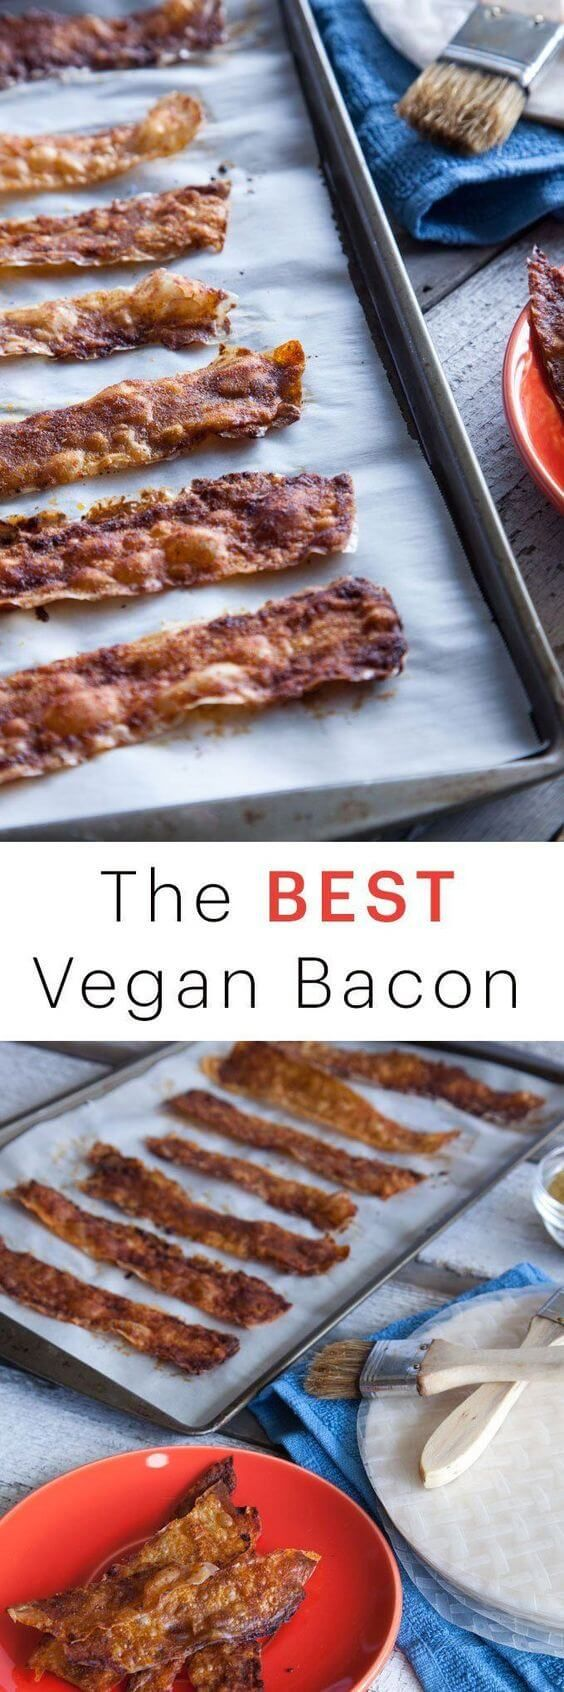 cool The Best Vegan Bacon: How To Make Vegan Bacon Using Rice Paper